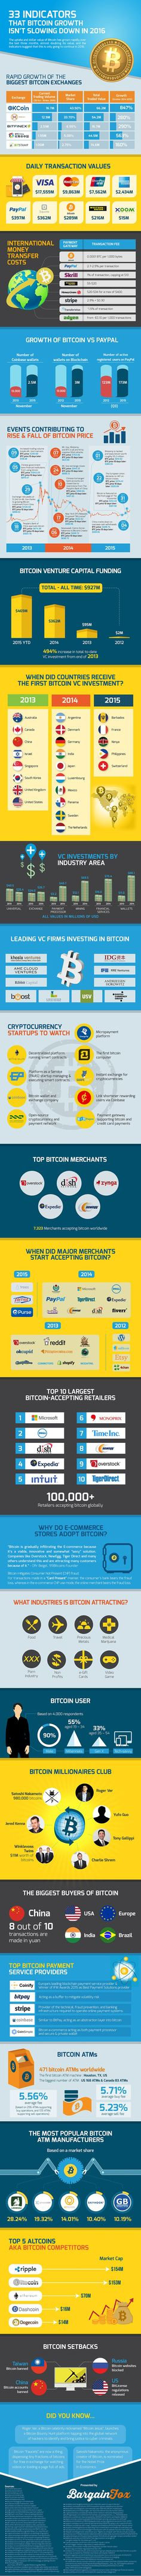 Why Bitcoin Will Continue to Grow in 2016 #infographic #Finance #Bitcoin 700 digital coins in the world. None oriented towards actually being used as currency. That all changes now! Save money with retail shopping while investing in the hottest crypto coin ever!